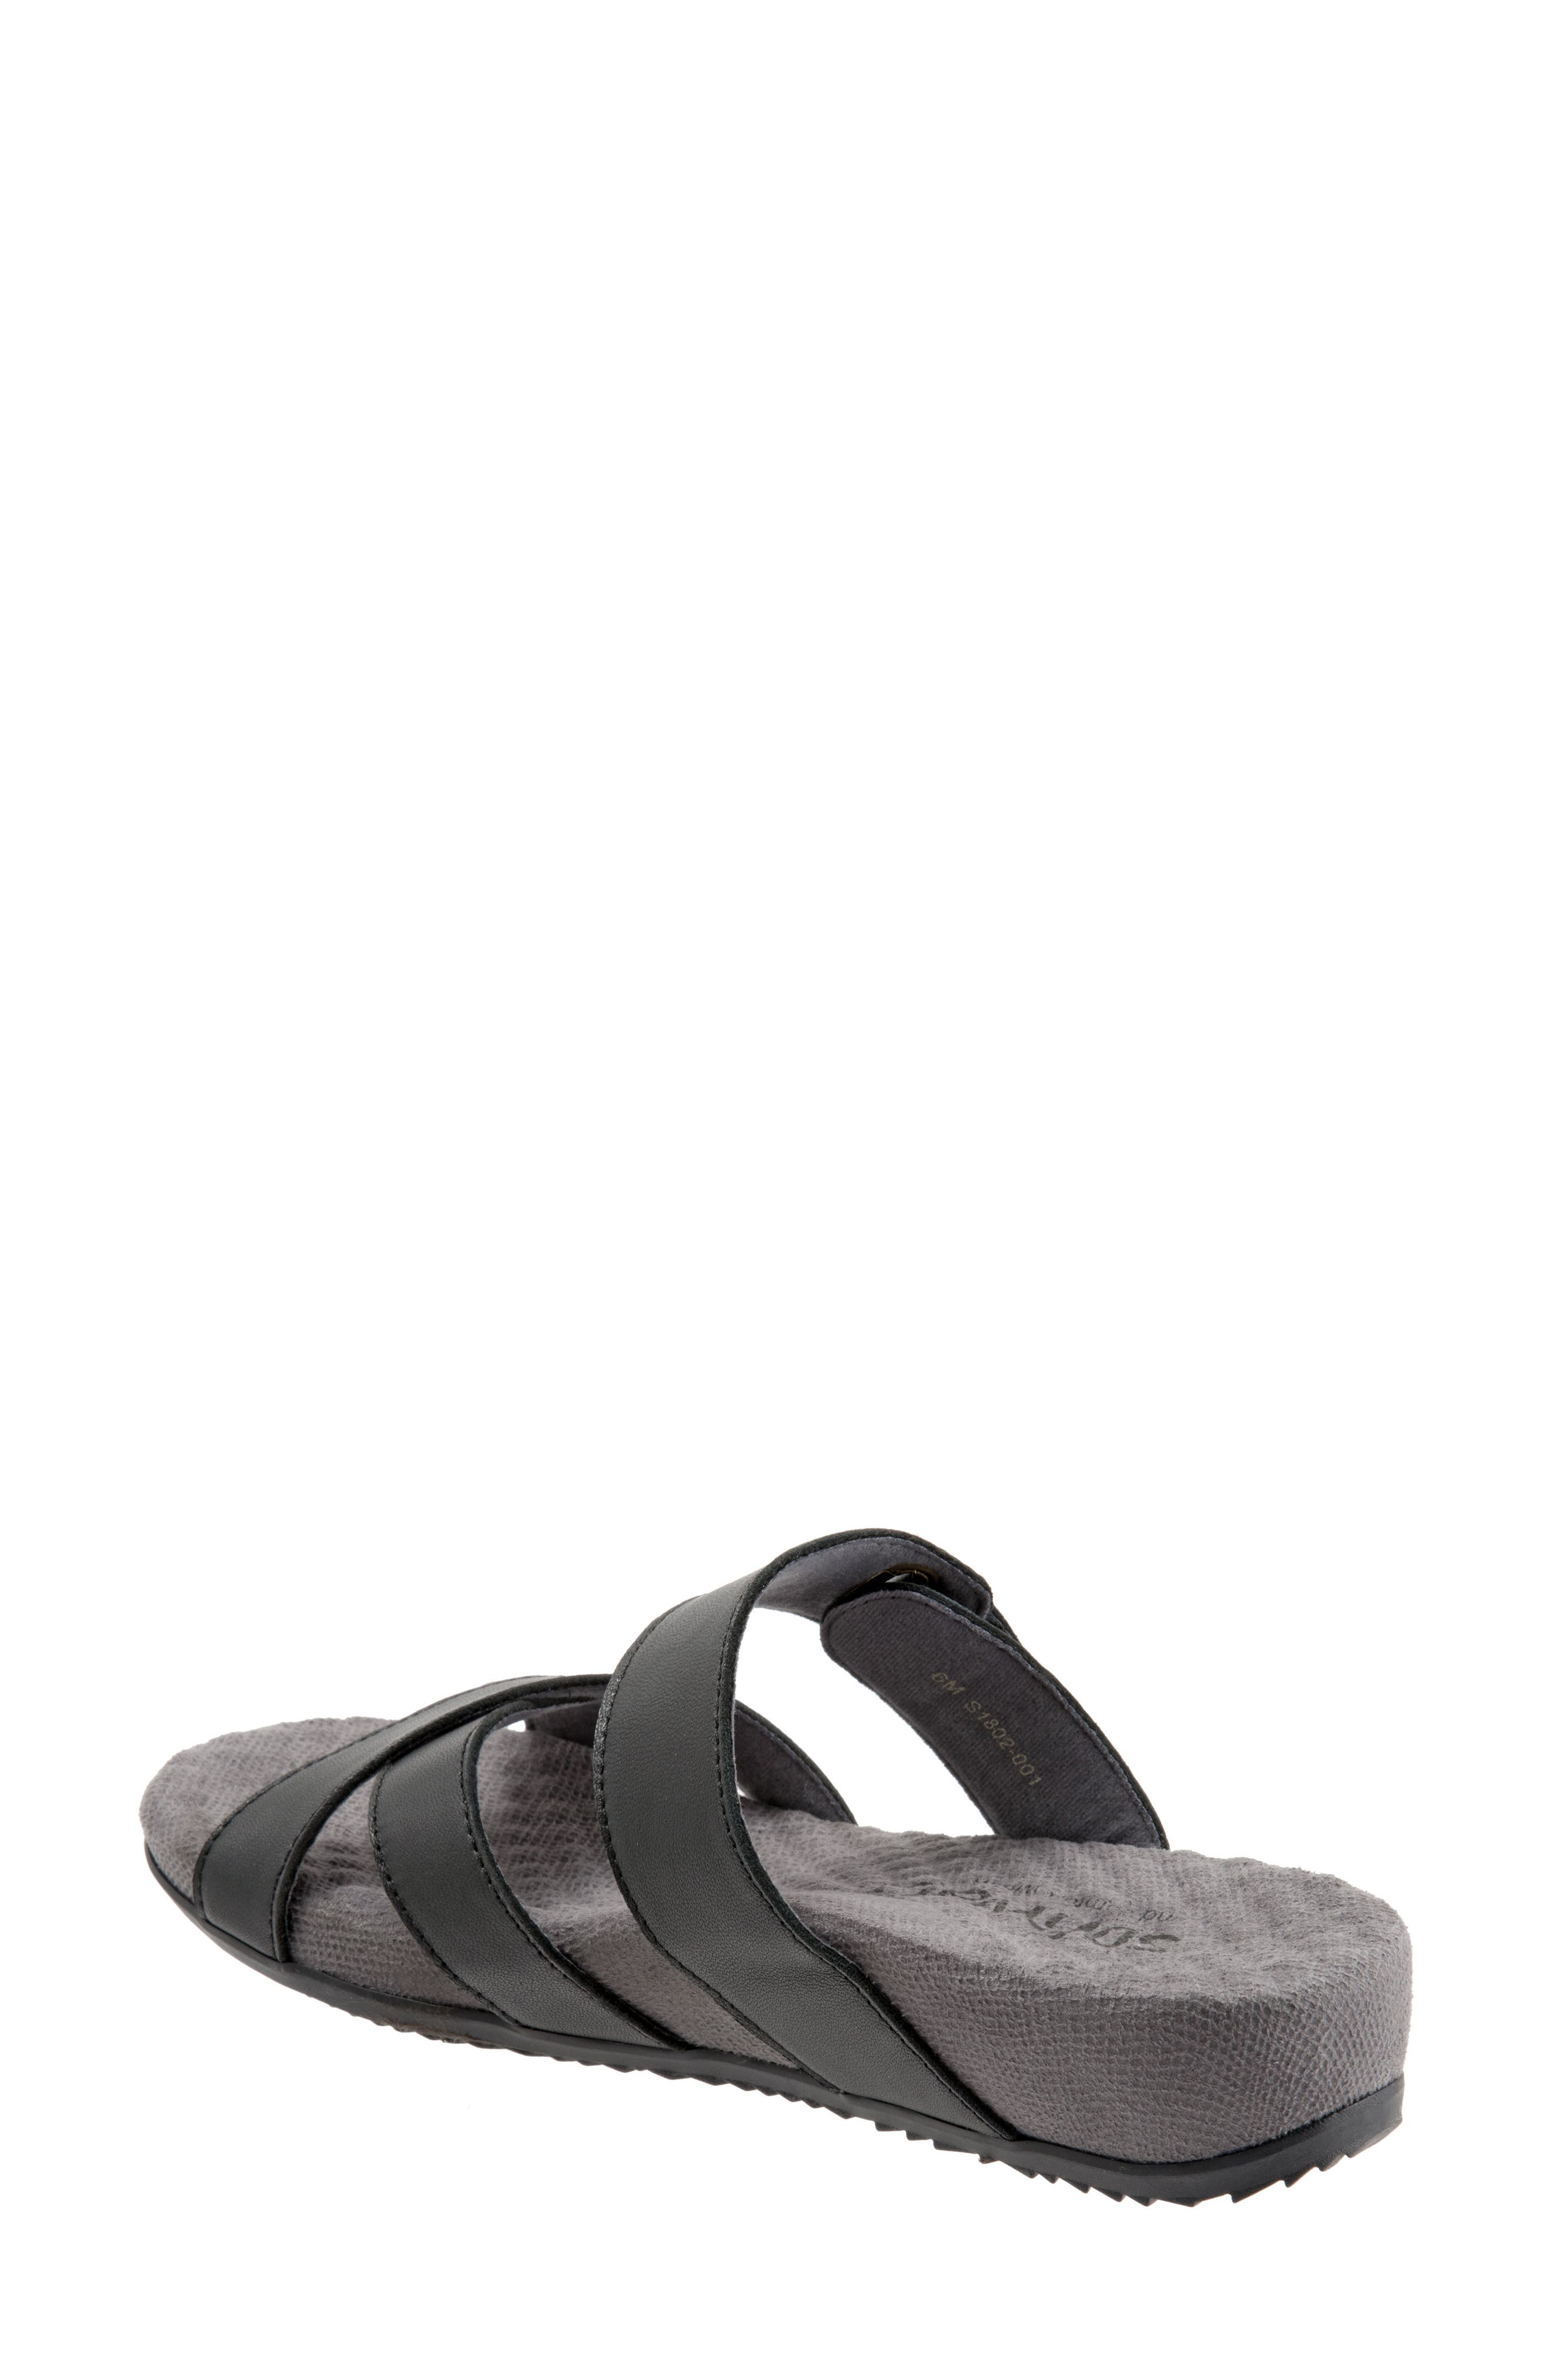 Brimley Sandal,                             Alternate thumbnail 2, color,                             Black Leather